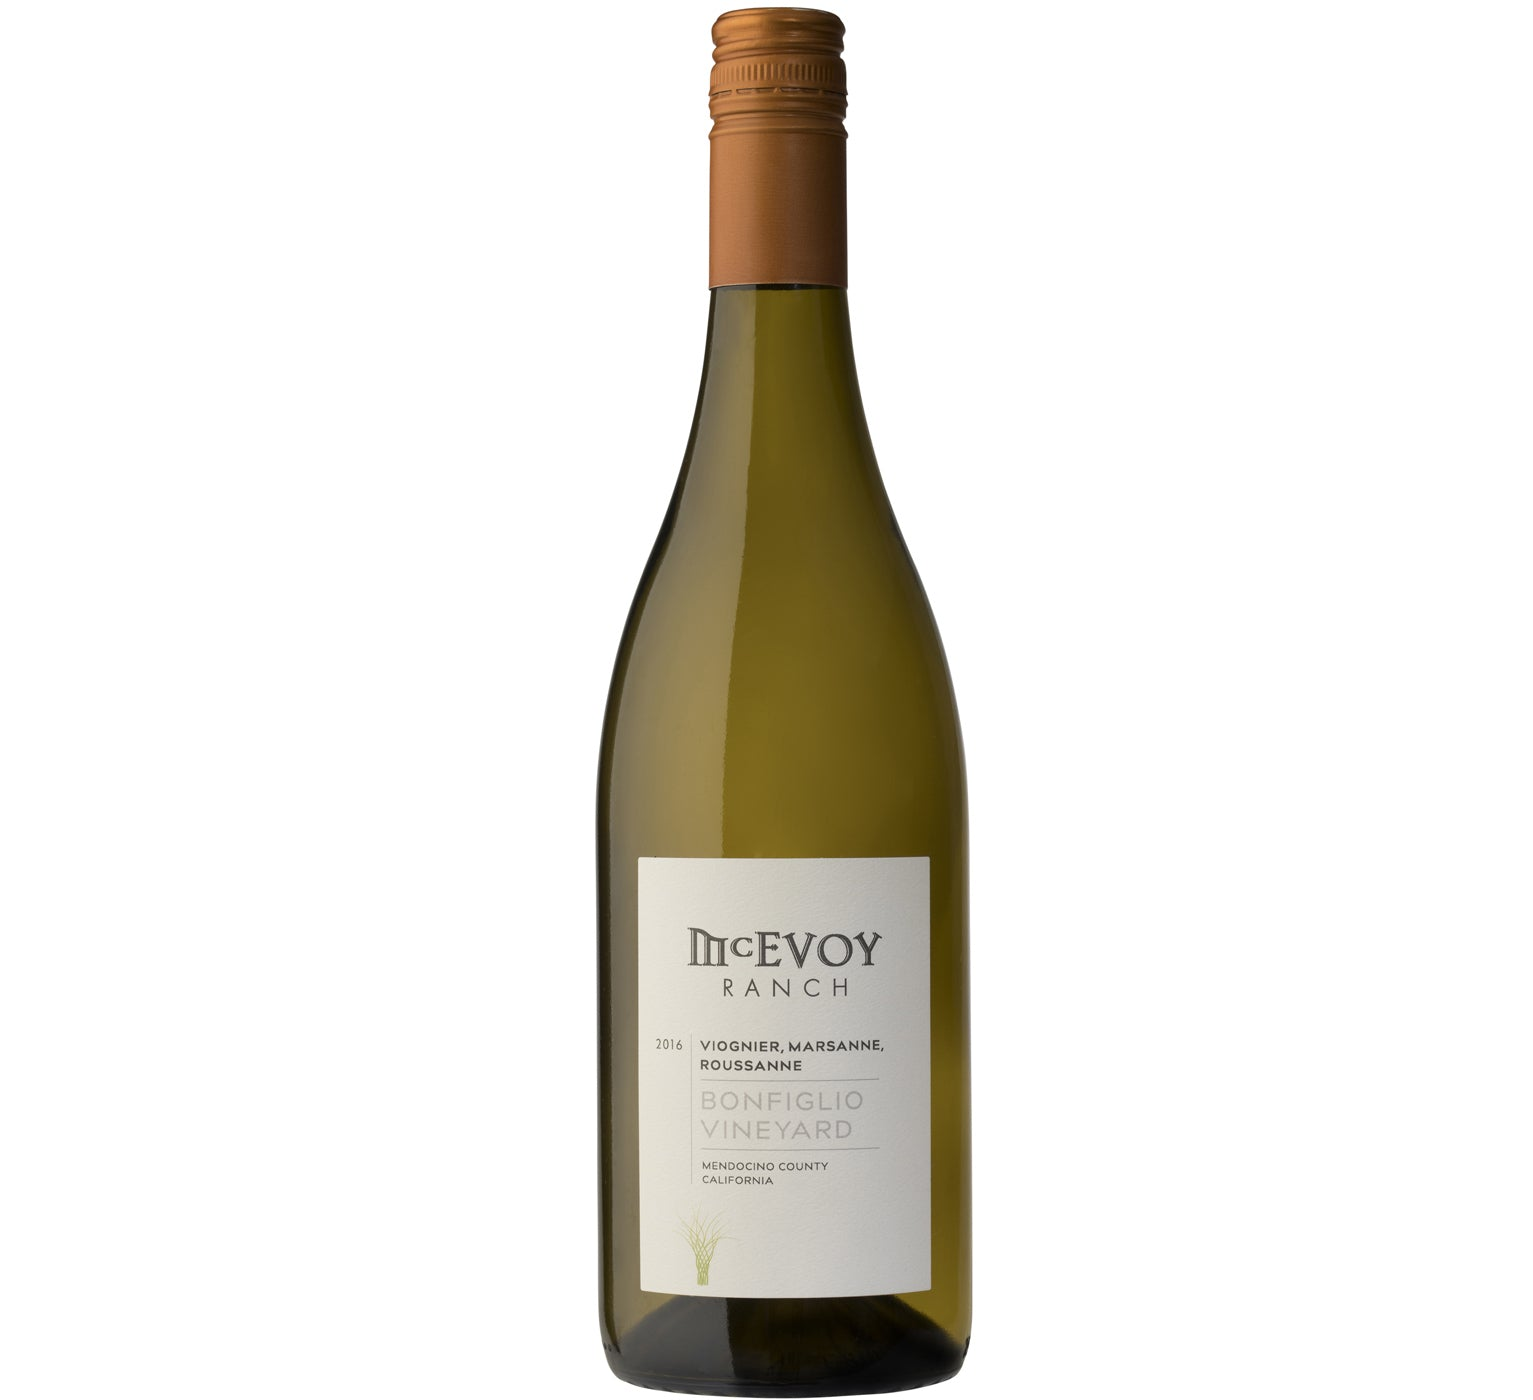 bottle of 2016 bonfiglio vineyard white wine blend